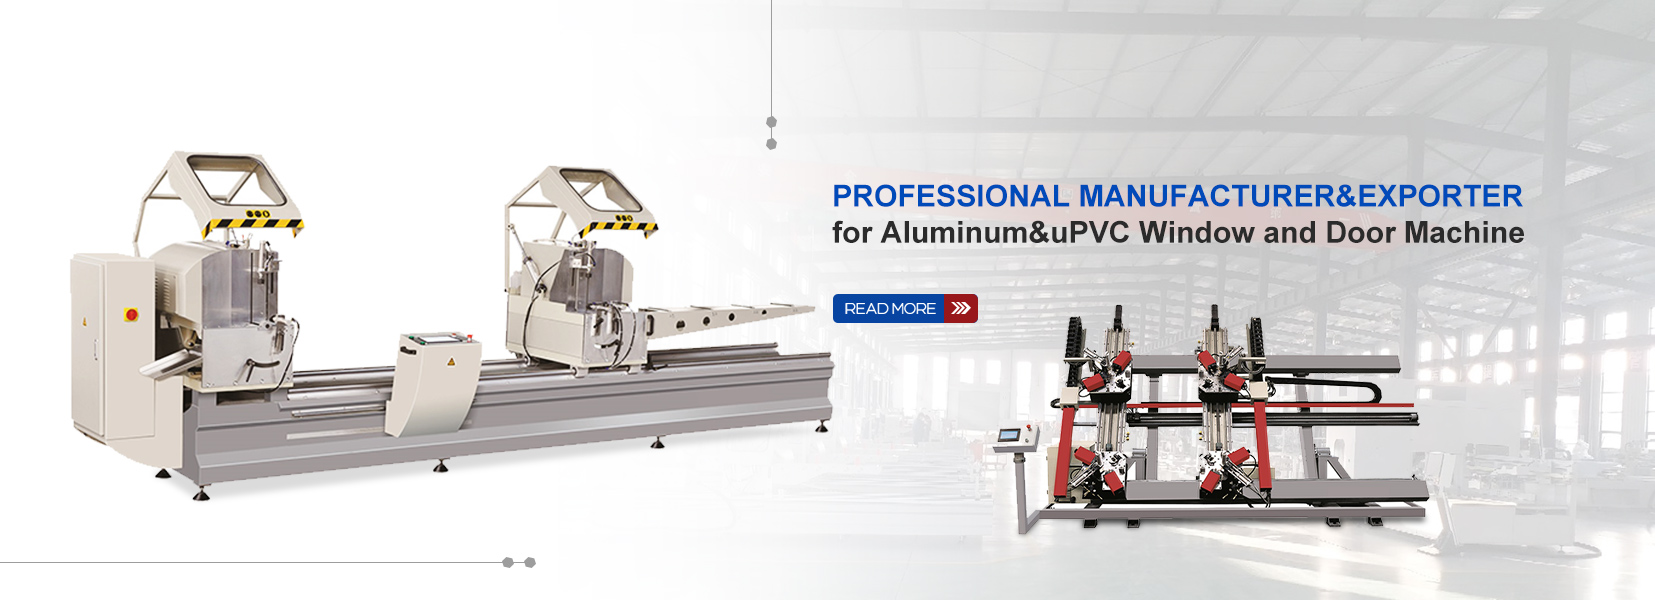 Professional MANUFACTURER&EXPORTER  for Aluminum&uPVC Window and Door Machine